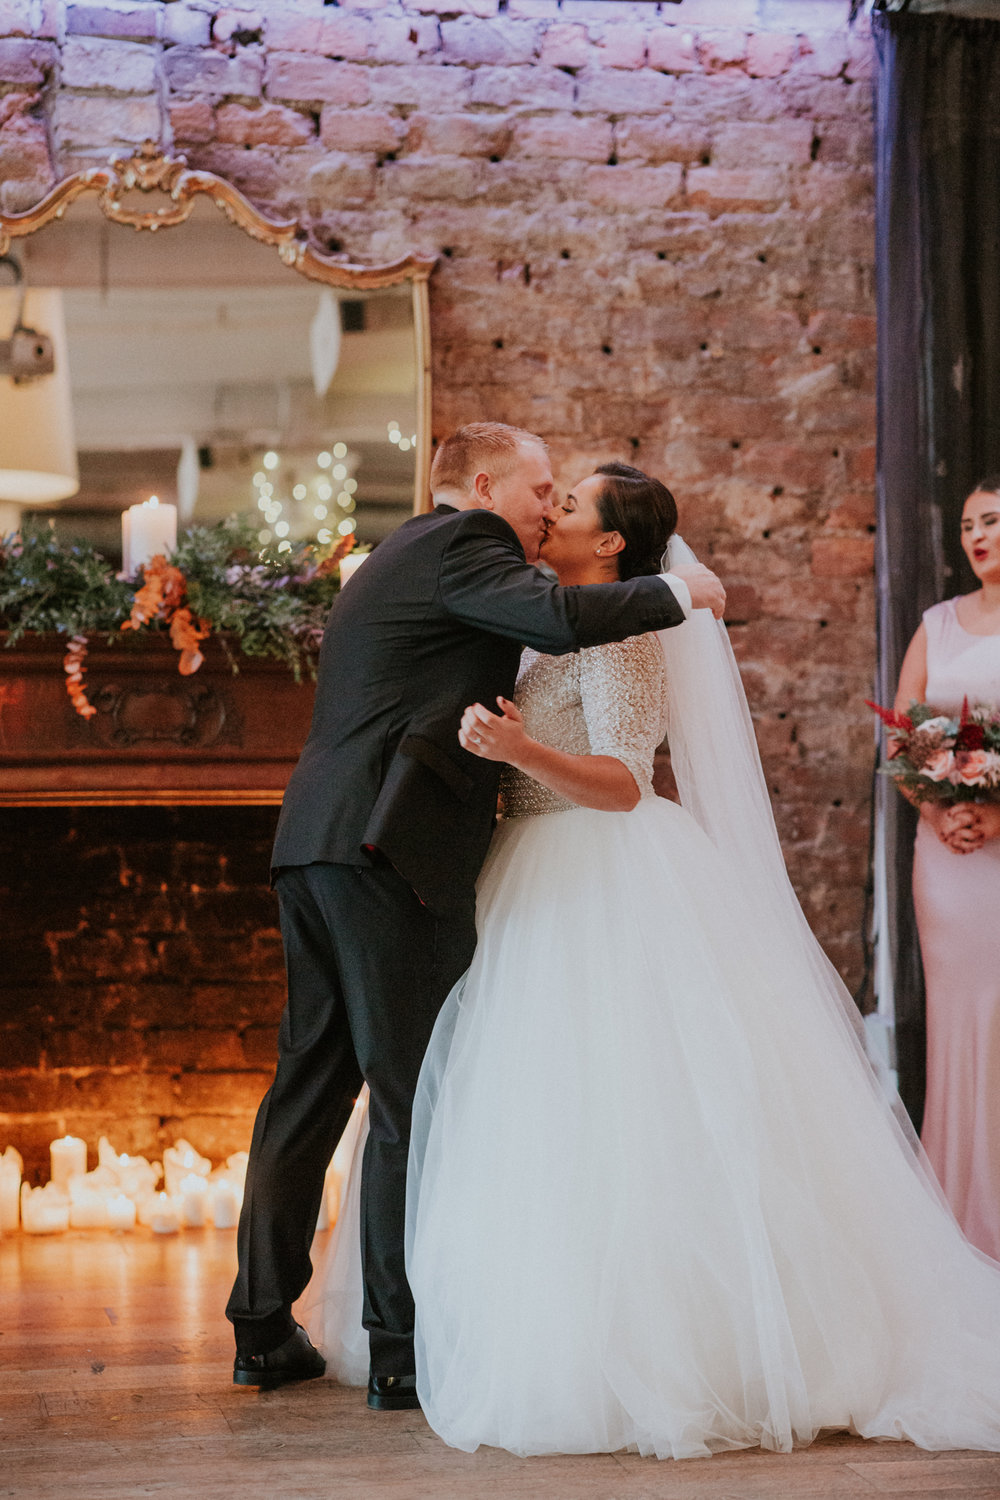 First kiss as a husband and wife at the 29 Private members club in Glasgow